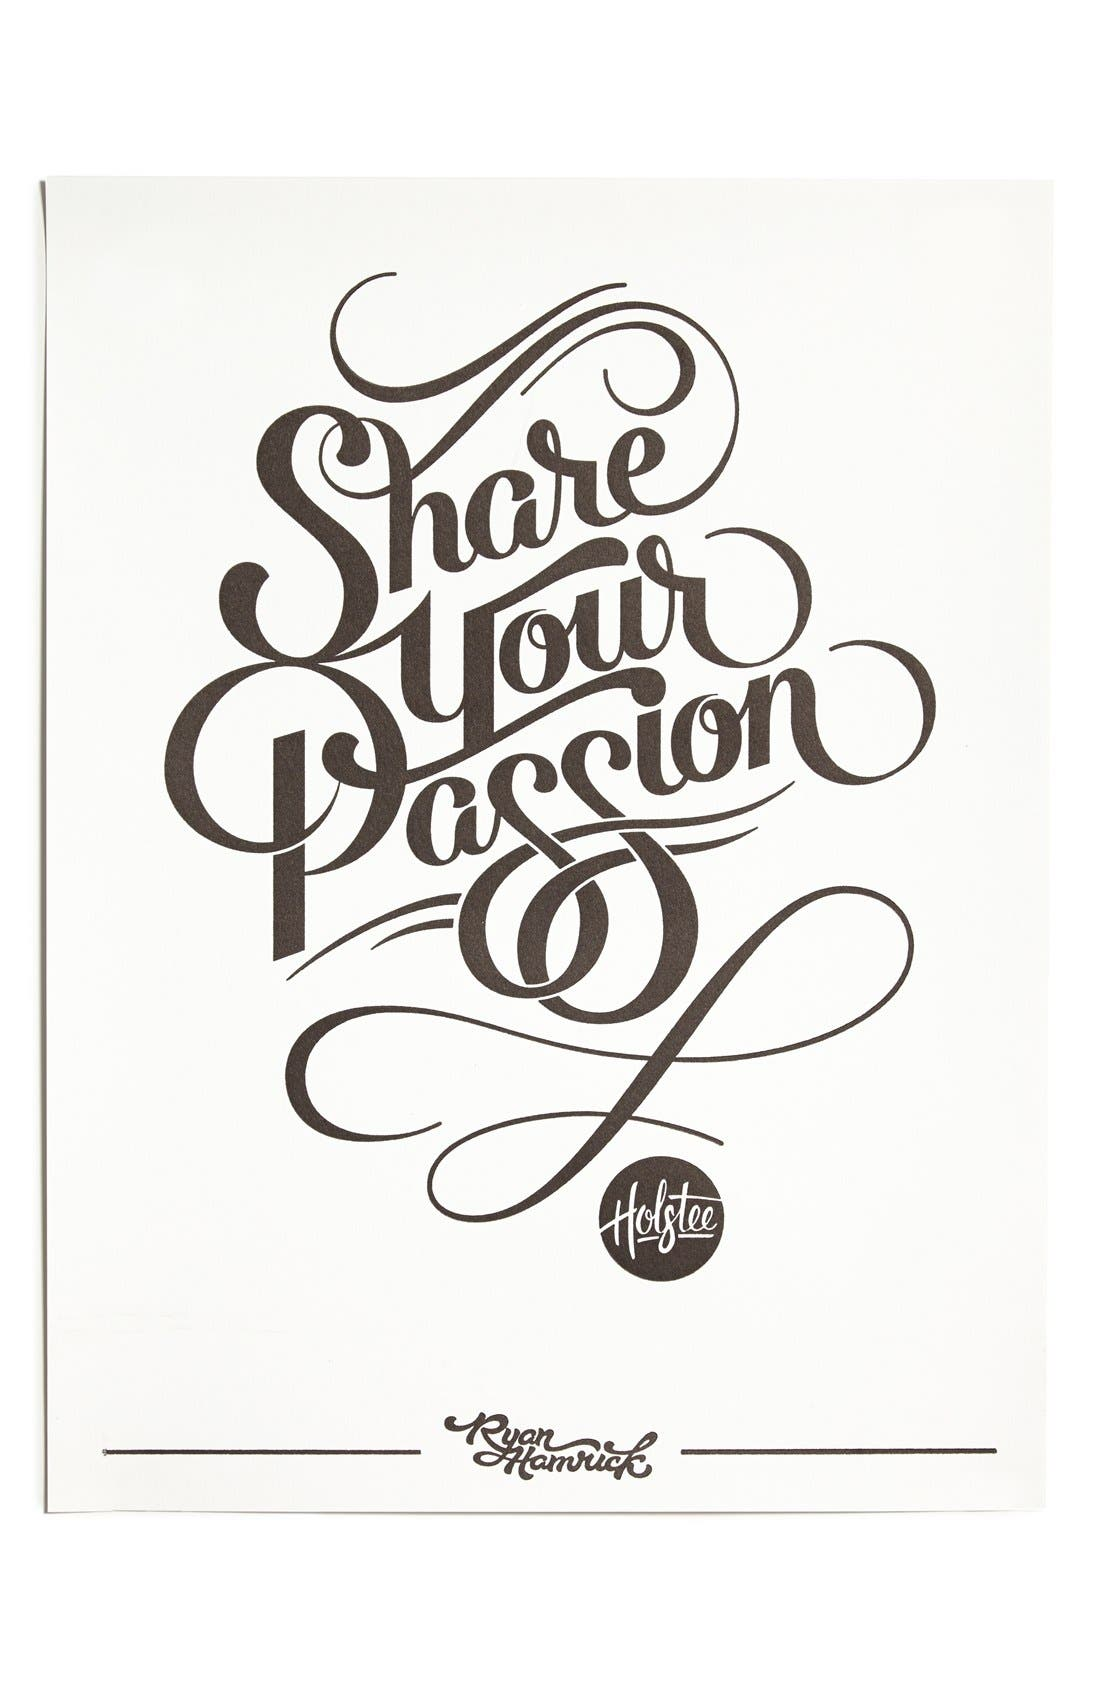 Alternate Image 1 Selected - Holstee 'Share Your Passion' Poster